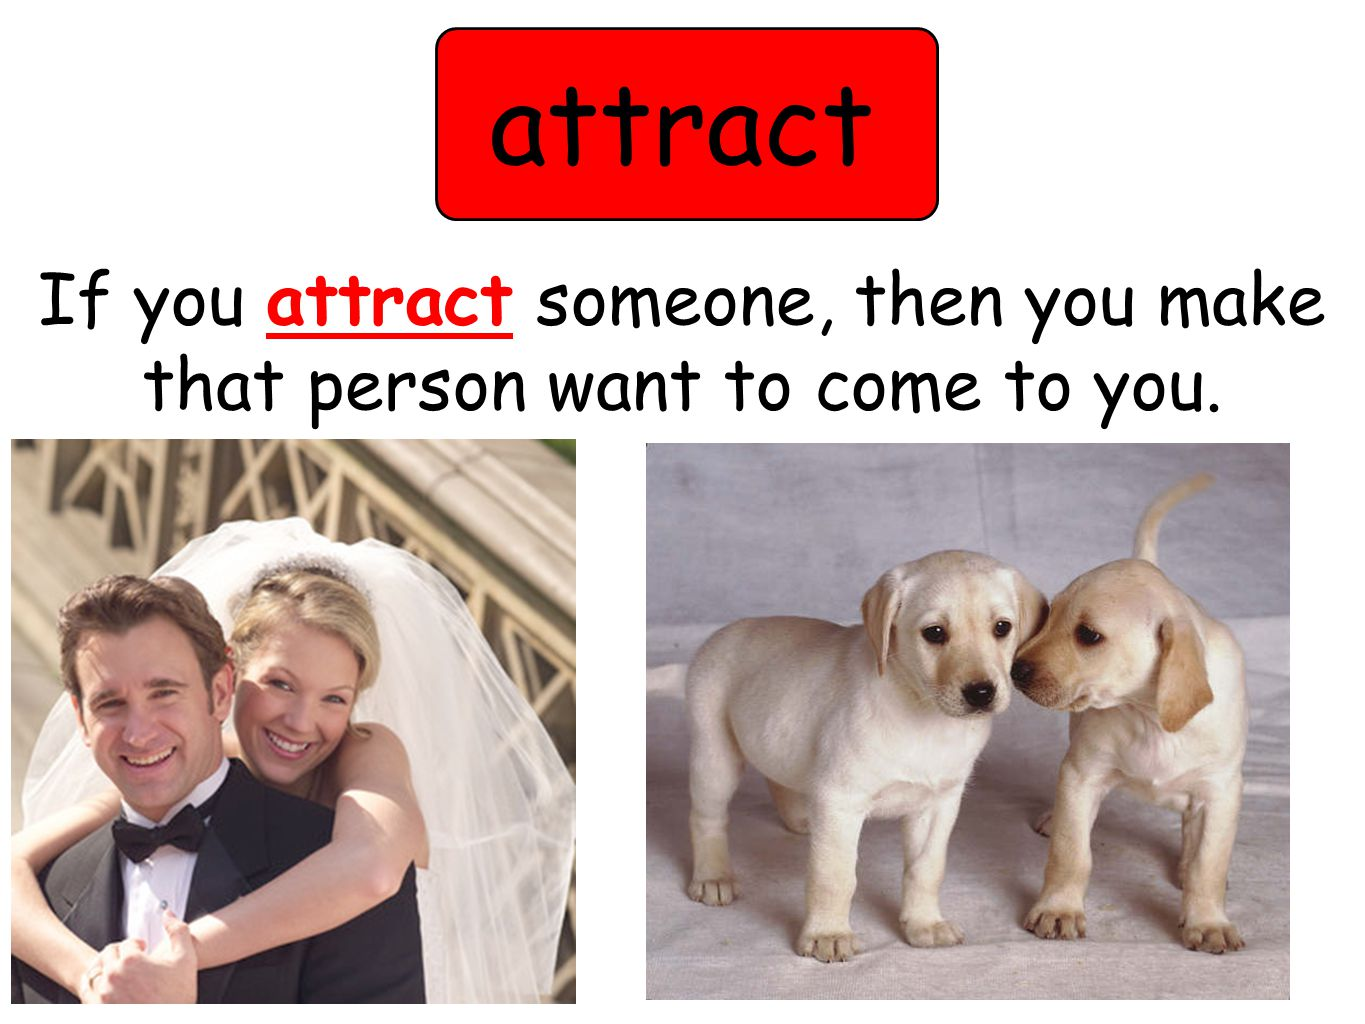 attract If you attract someone, then you make that person want to come to you.